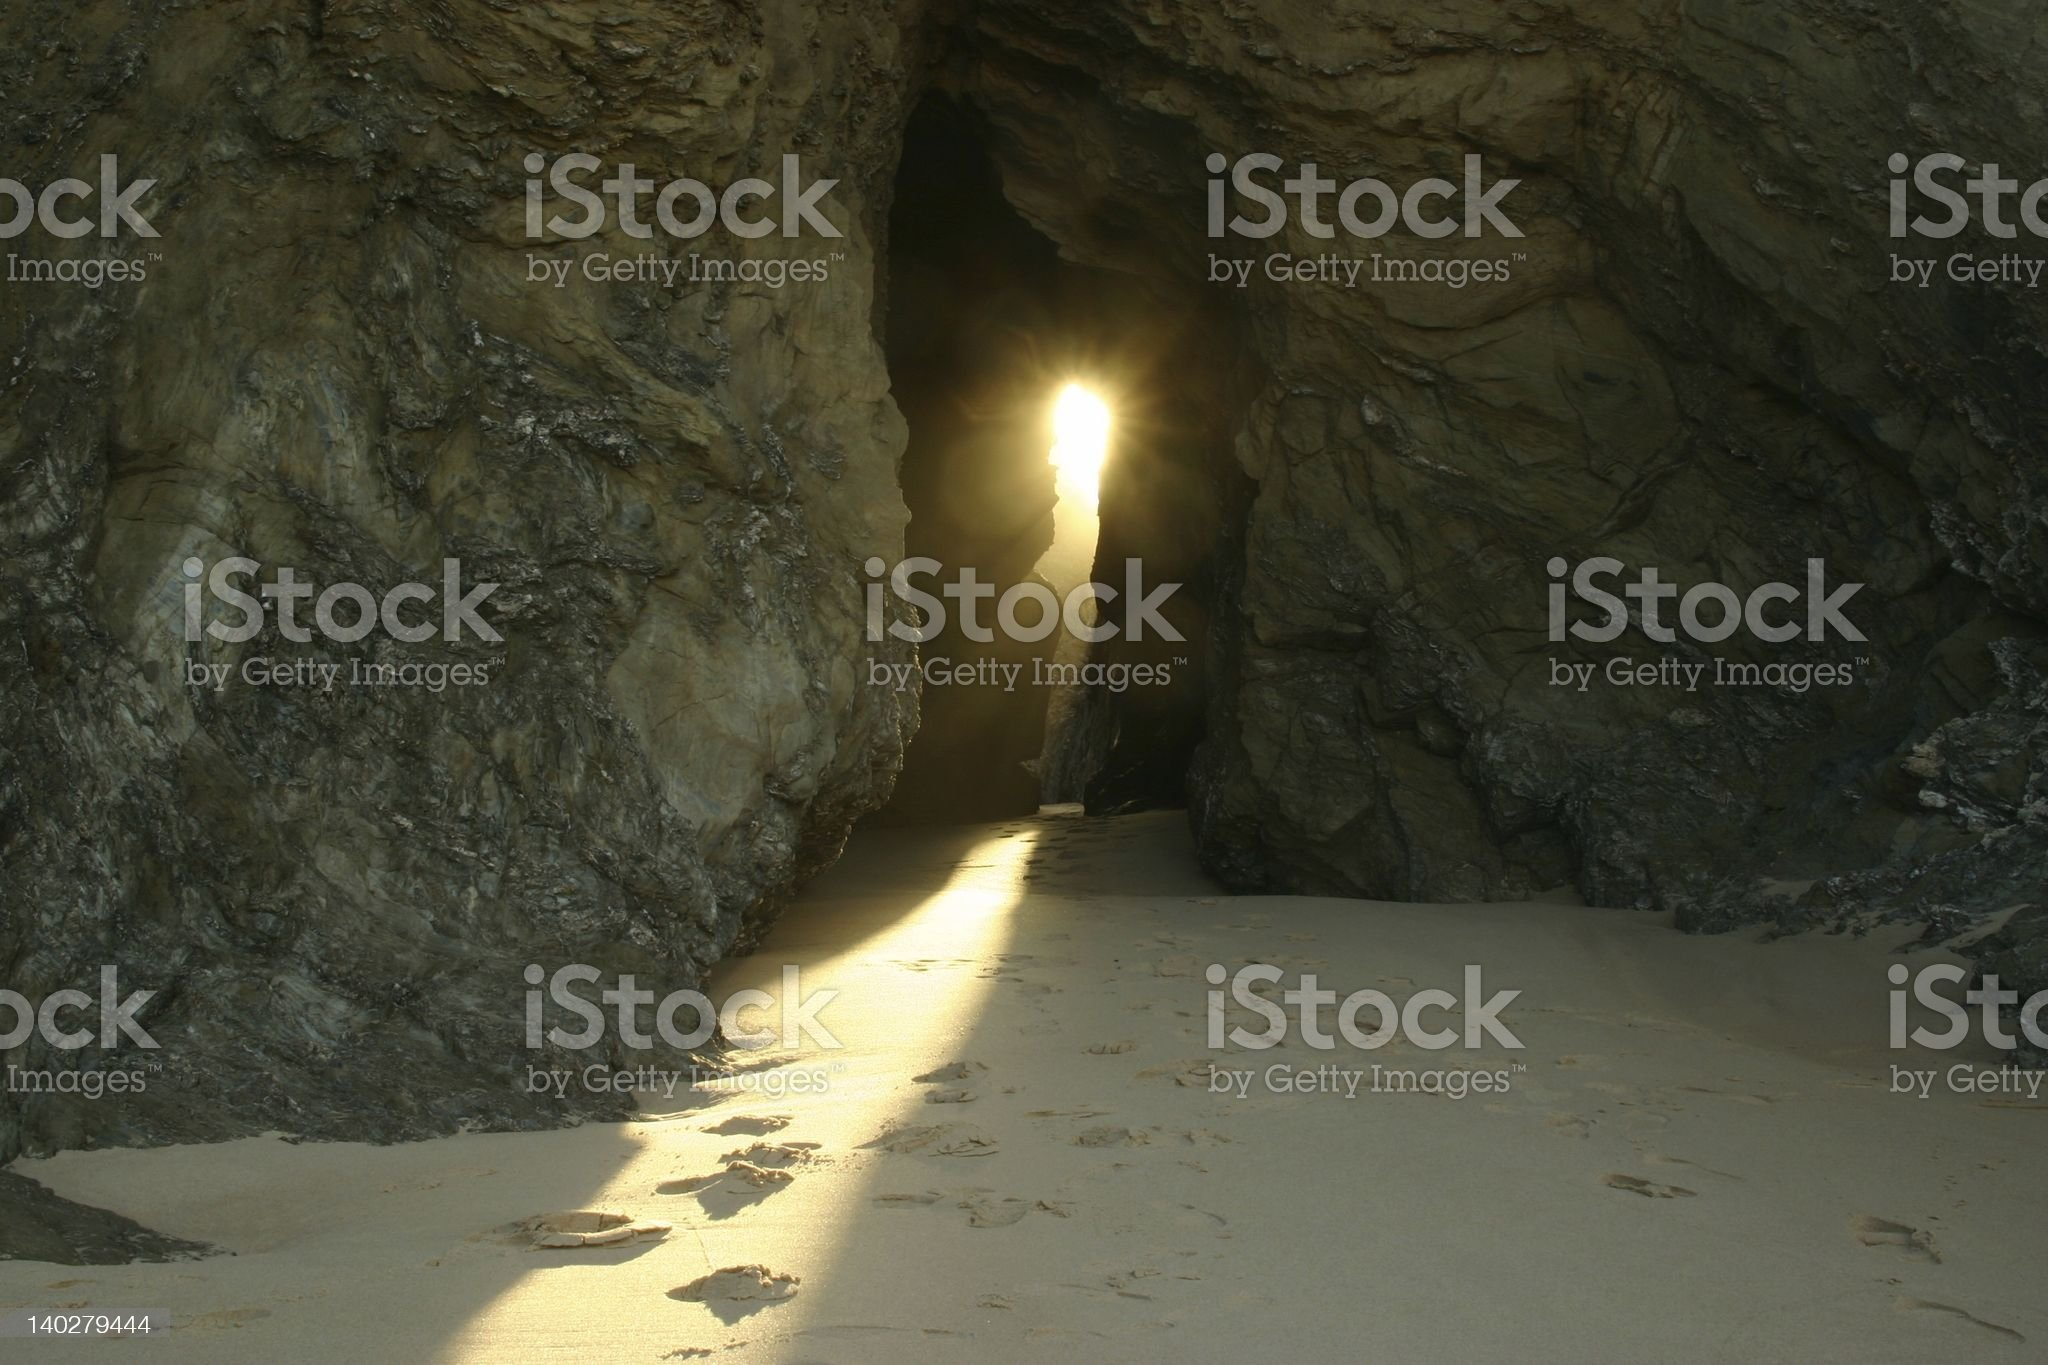 A little bit of sunlight shining through the rocks  royalty-free stock photo